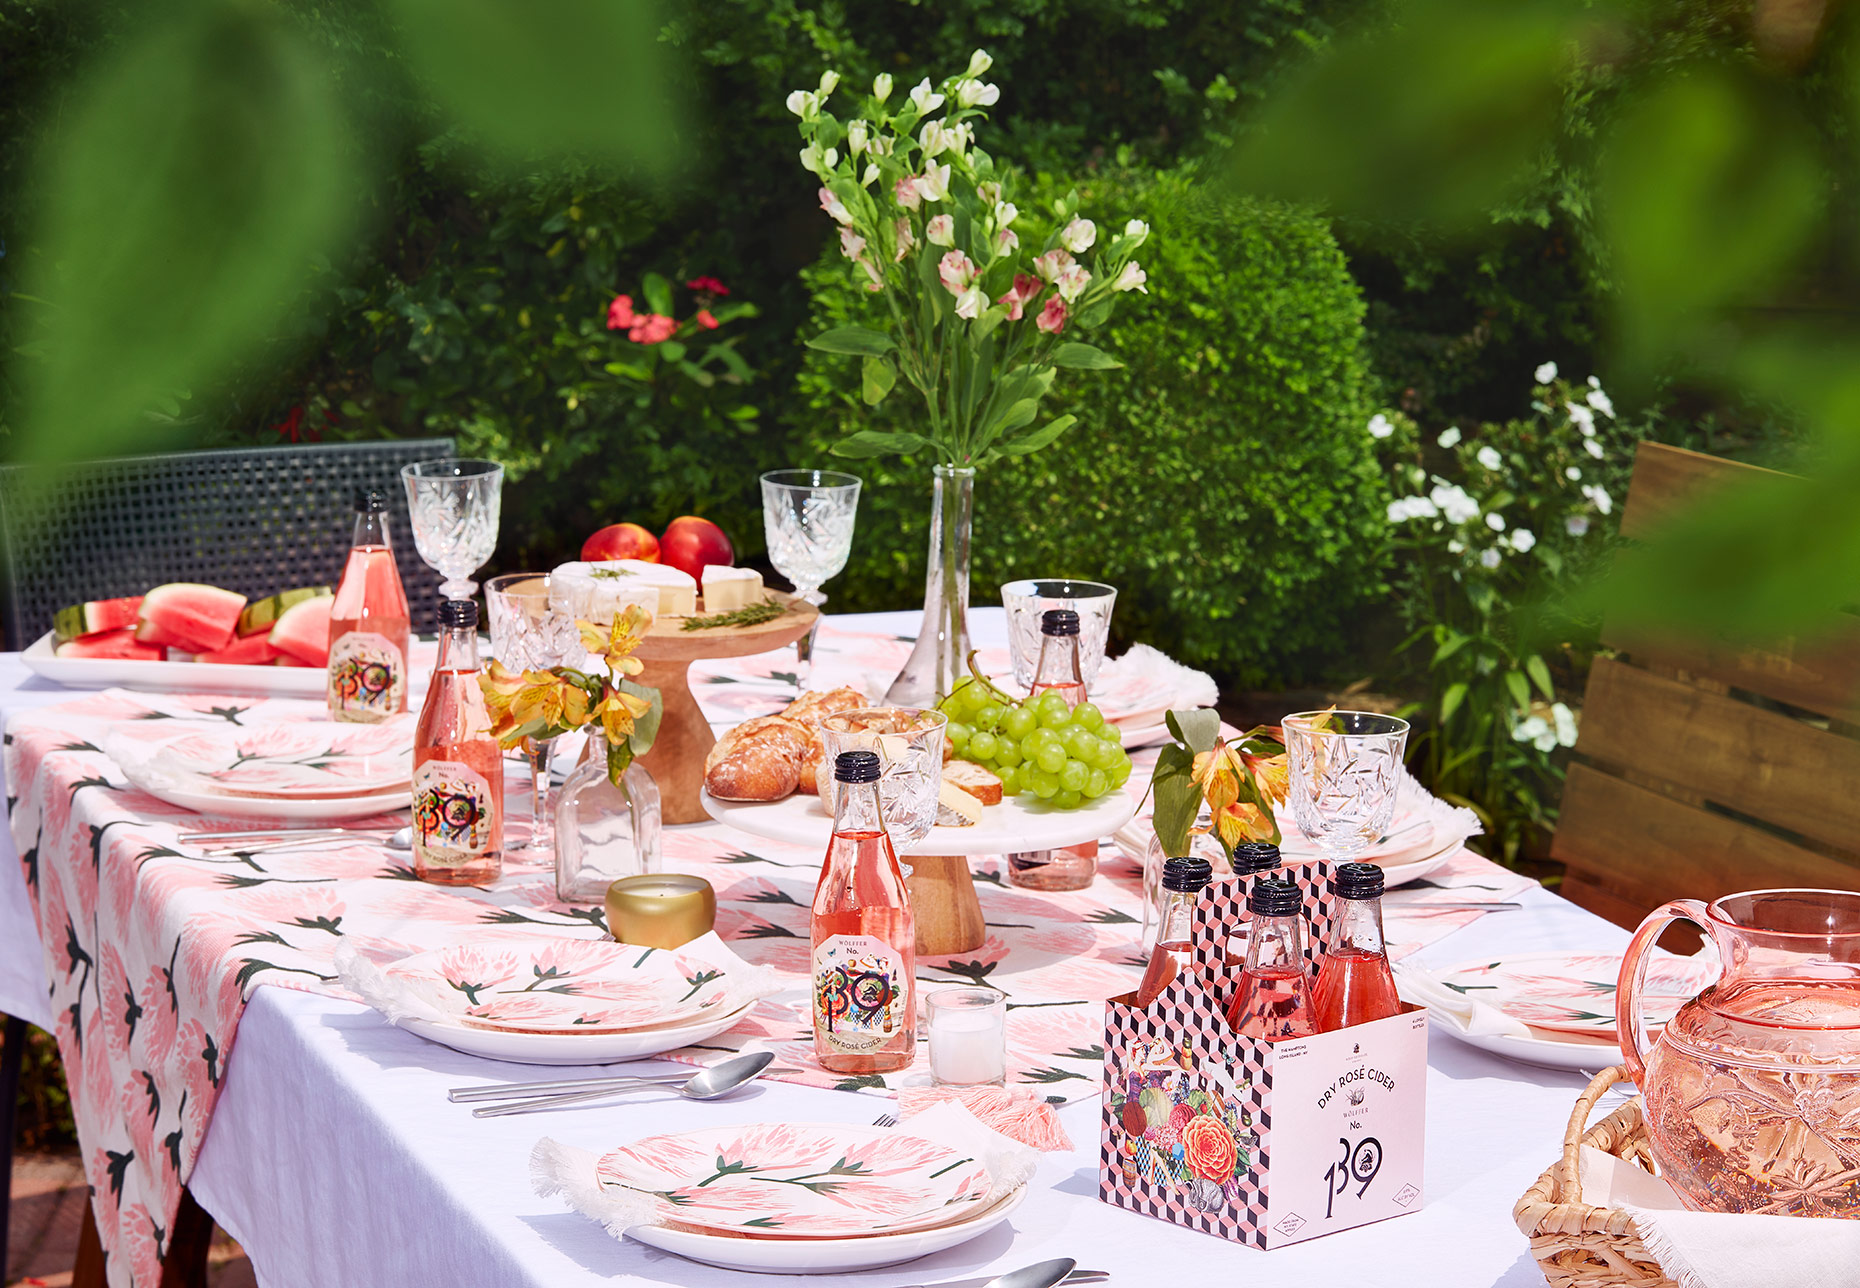 OutDoorDining_Rose_Table